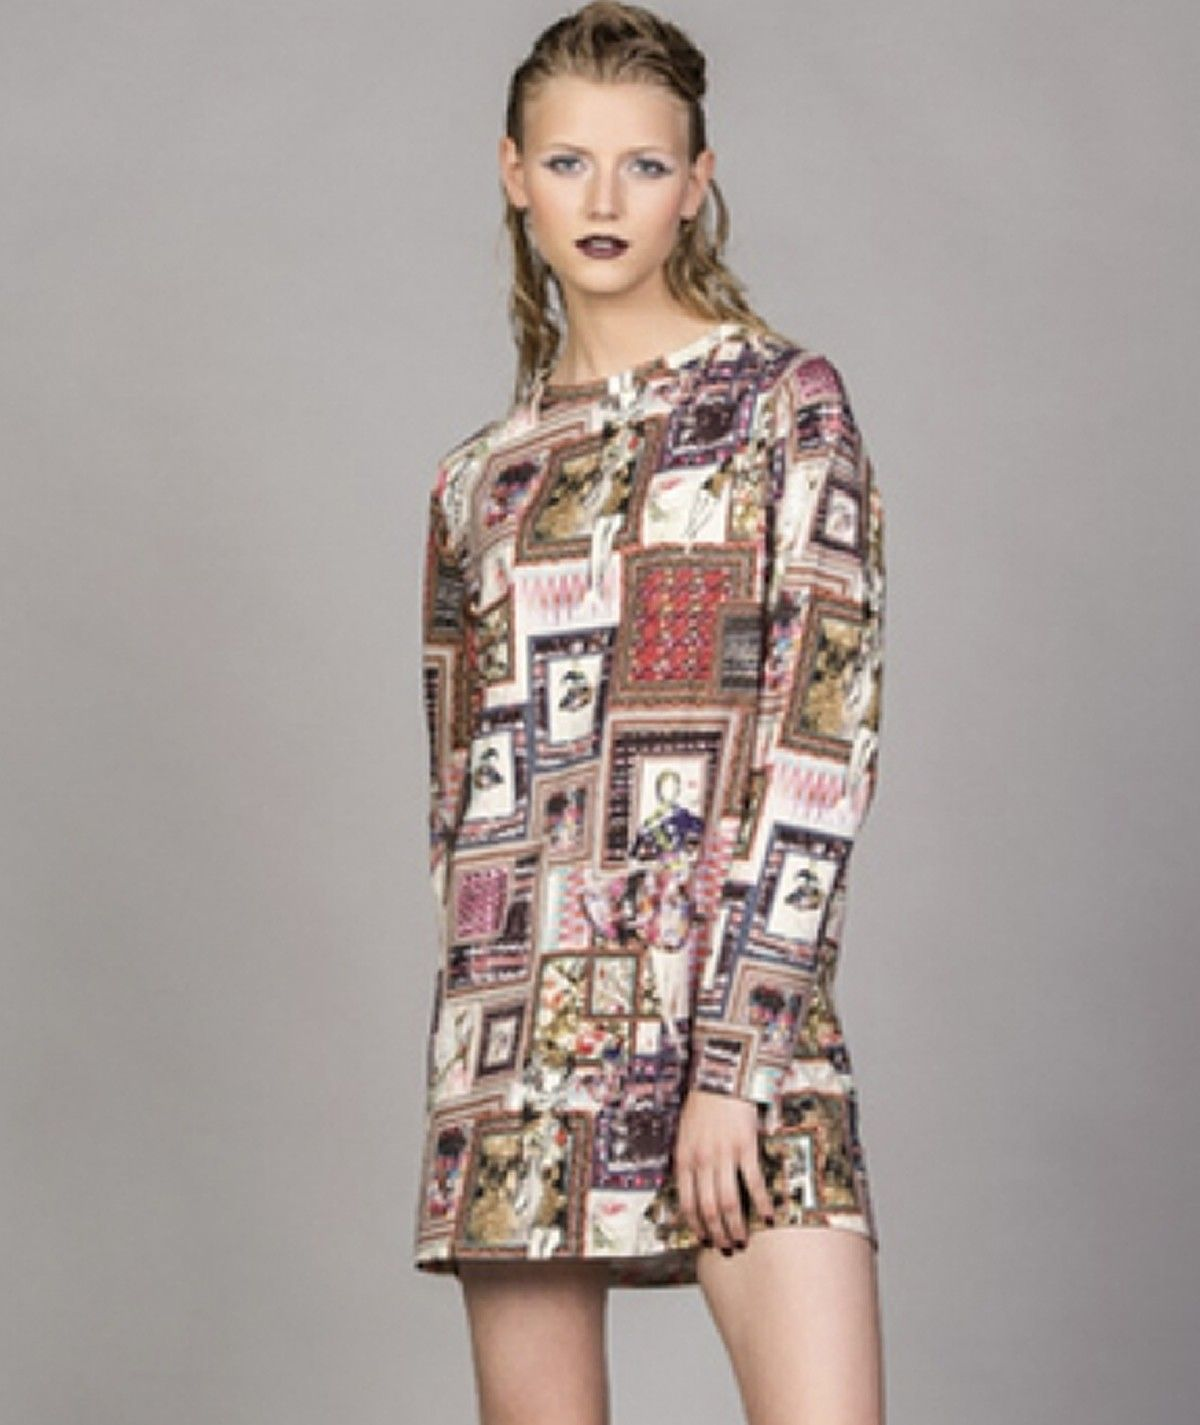 Tunic with graffiti print